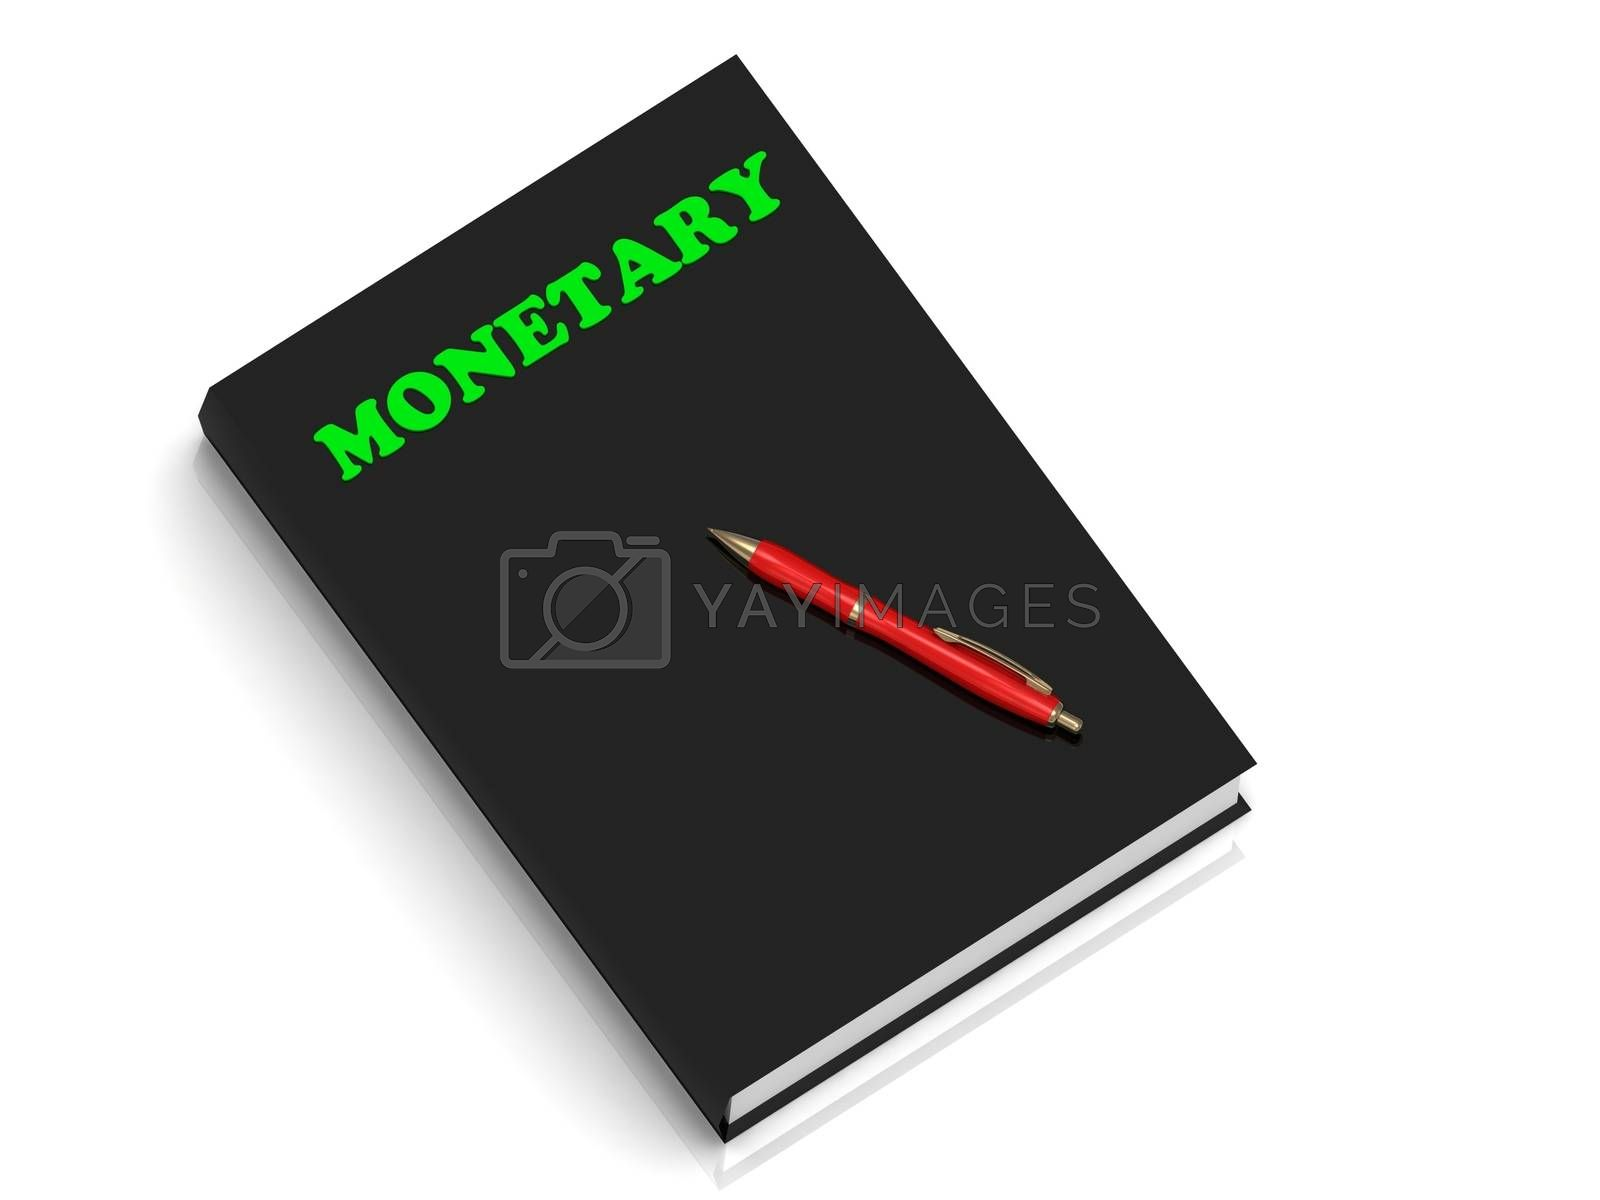 MONETARY- inscription of green letters on black book on white background